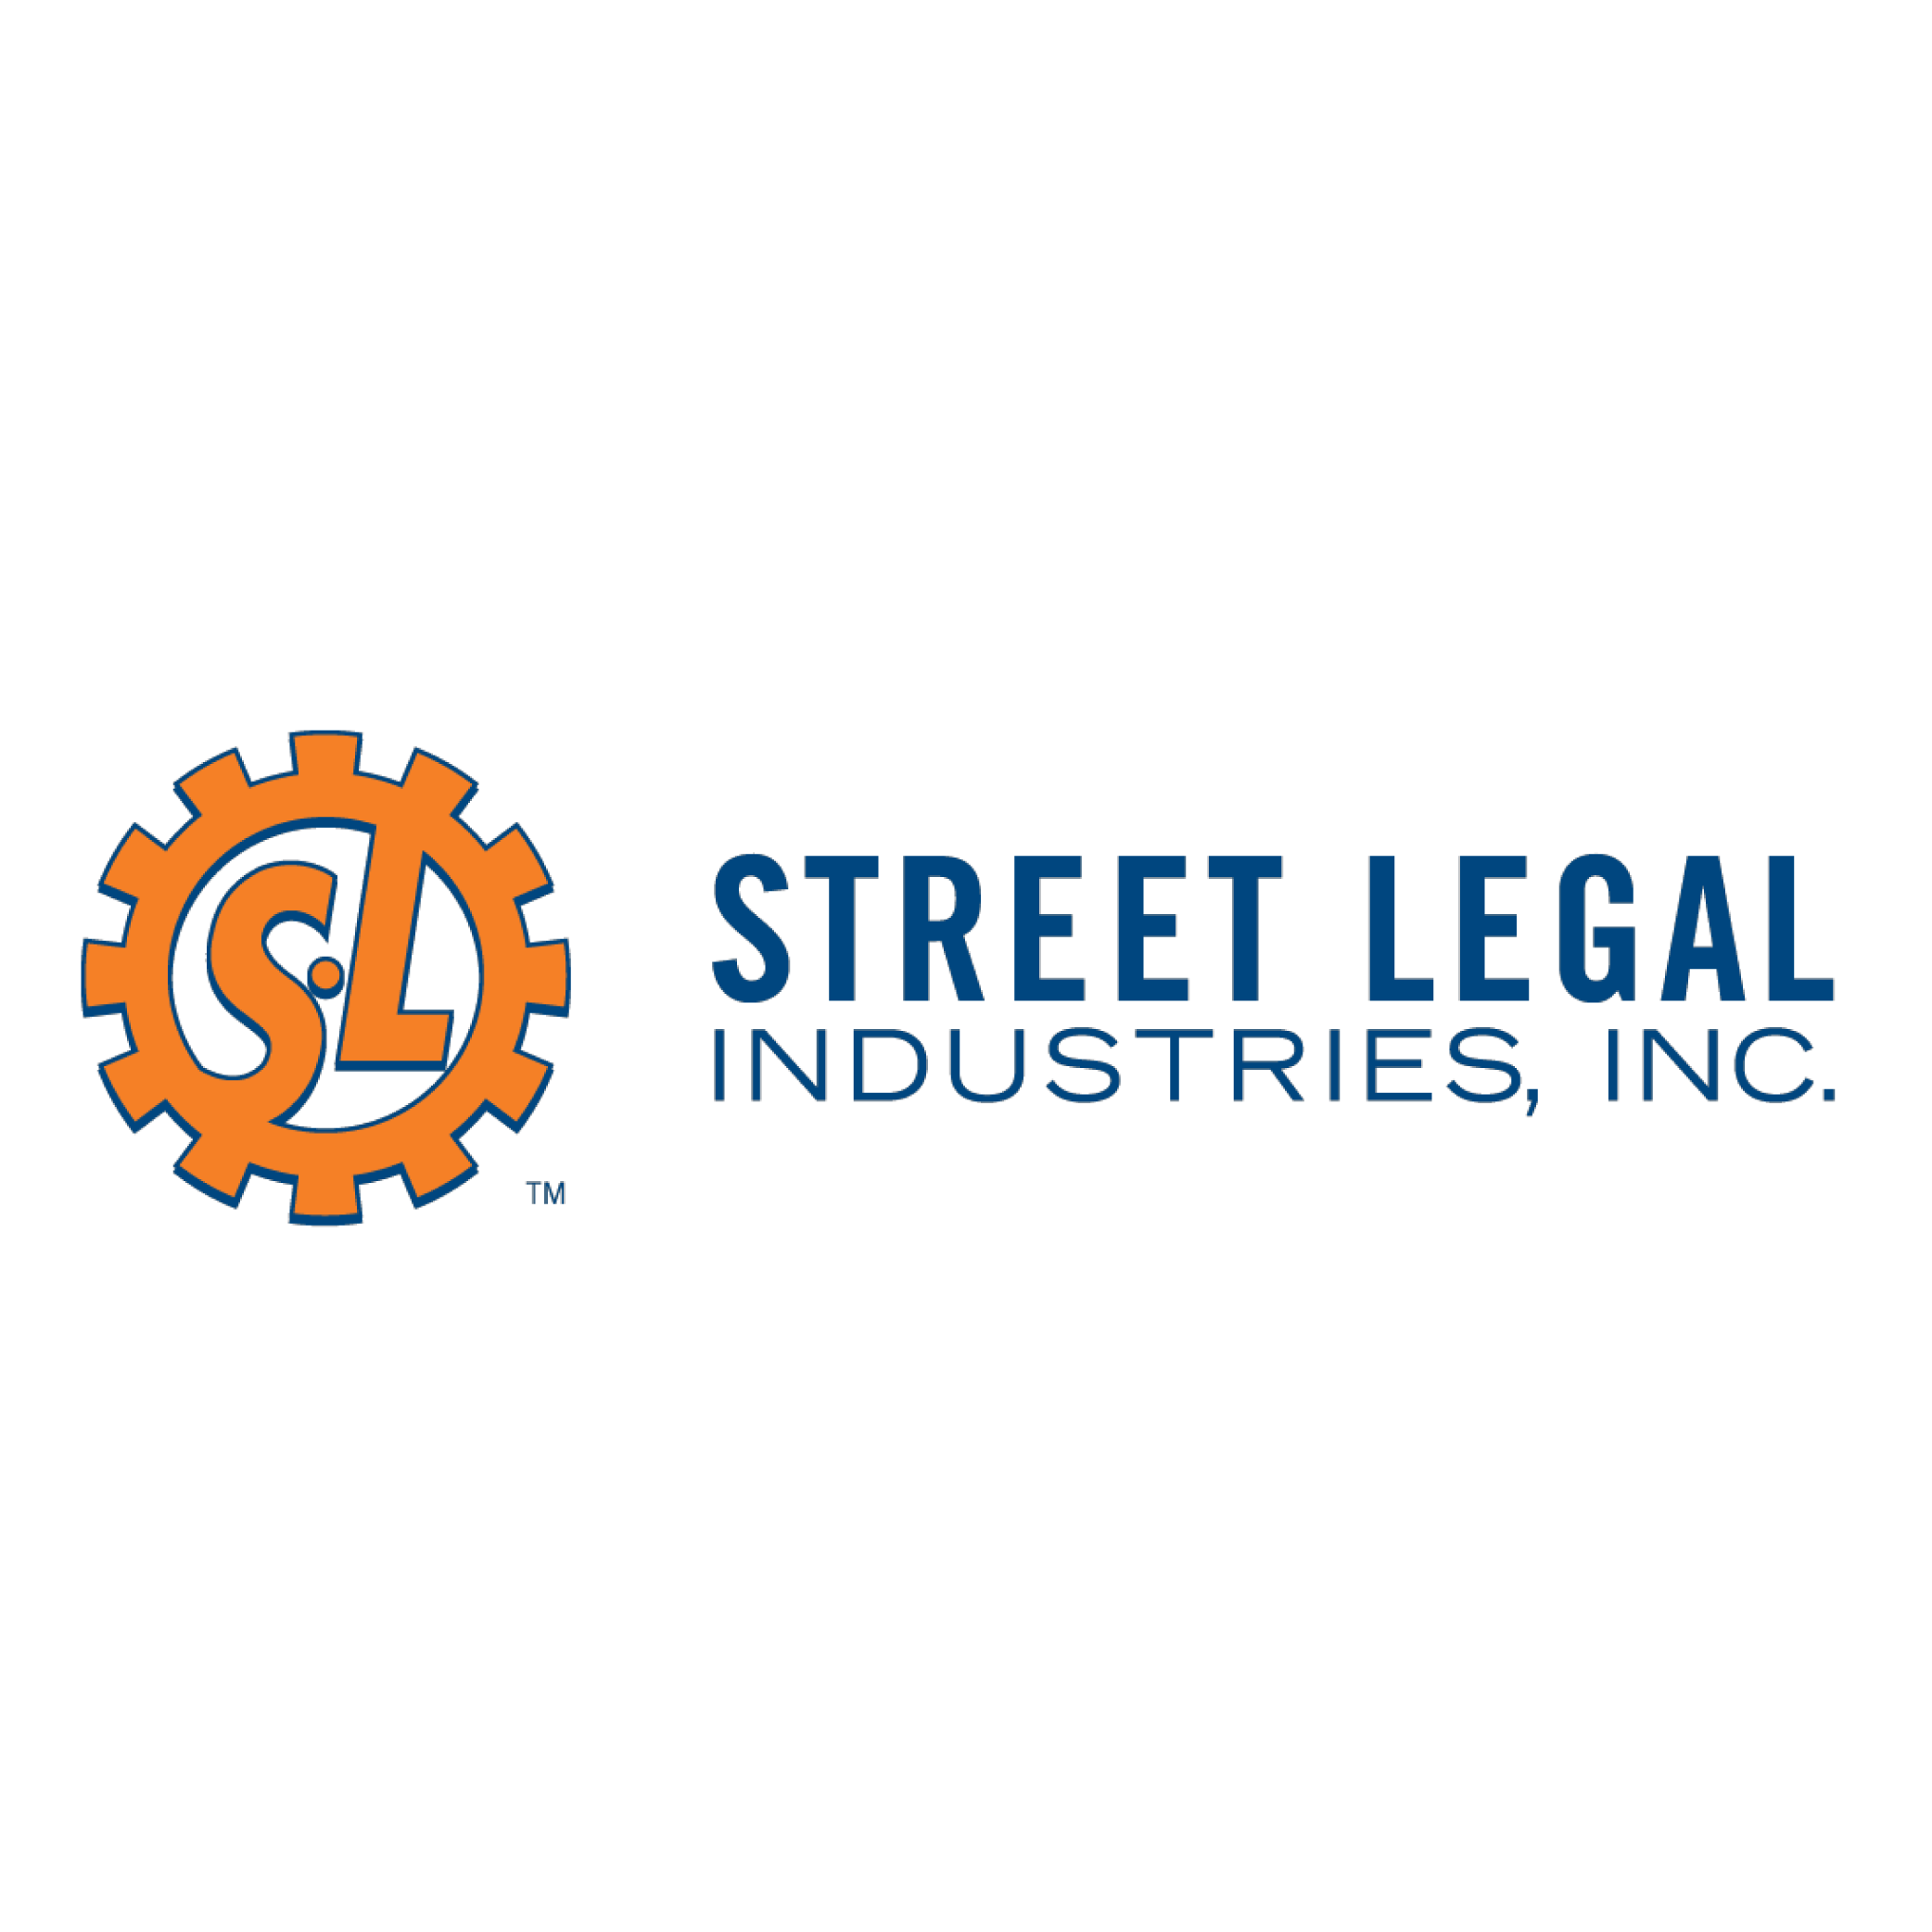 Street Legal Industries, Inc. Logo